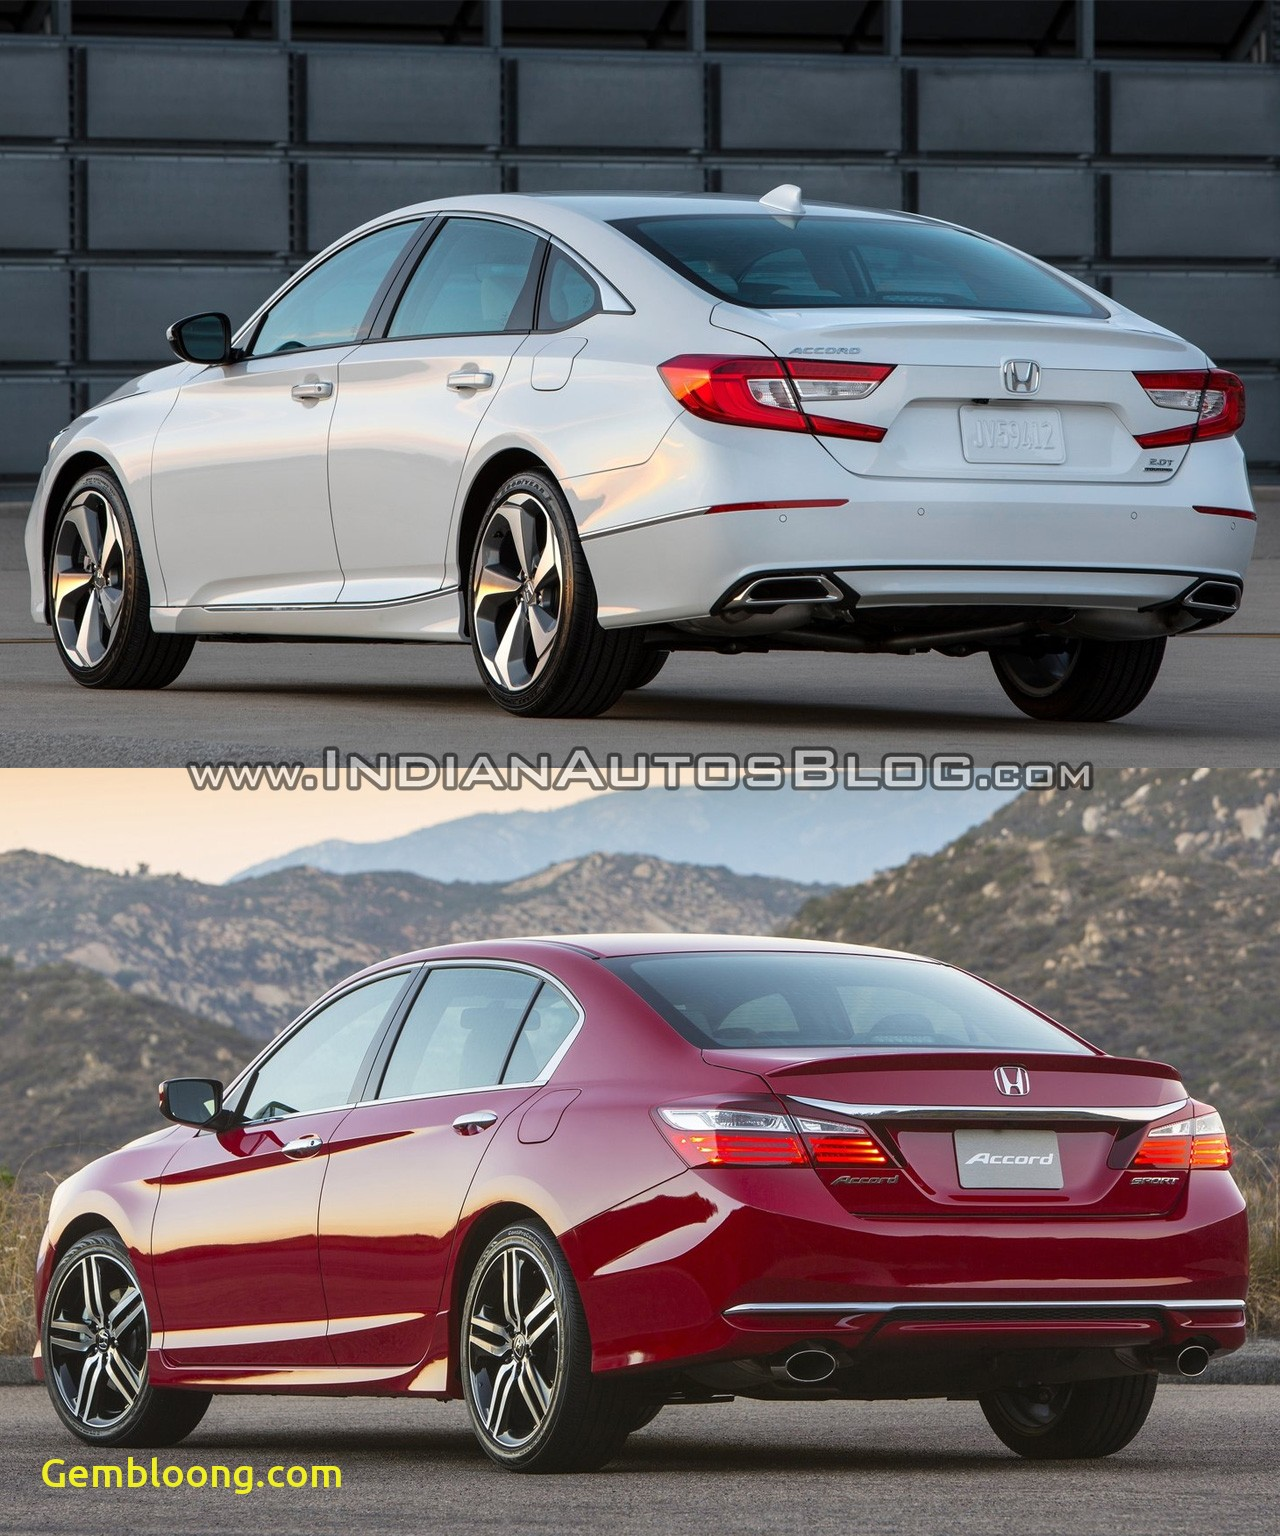 Accord 2016 New Honda Accord 2018 Honda Accord Price In India 2018